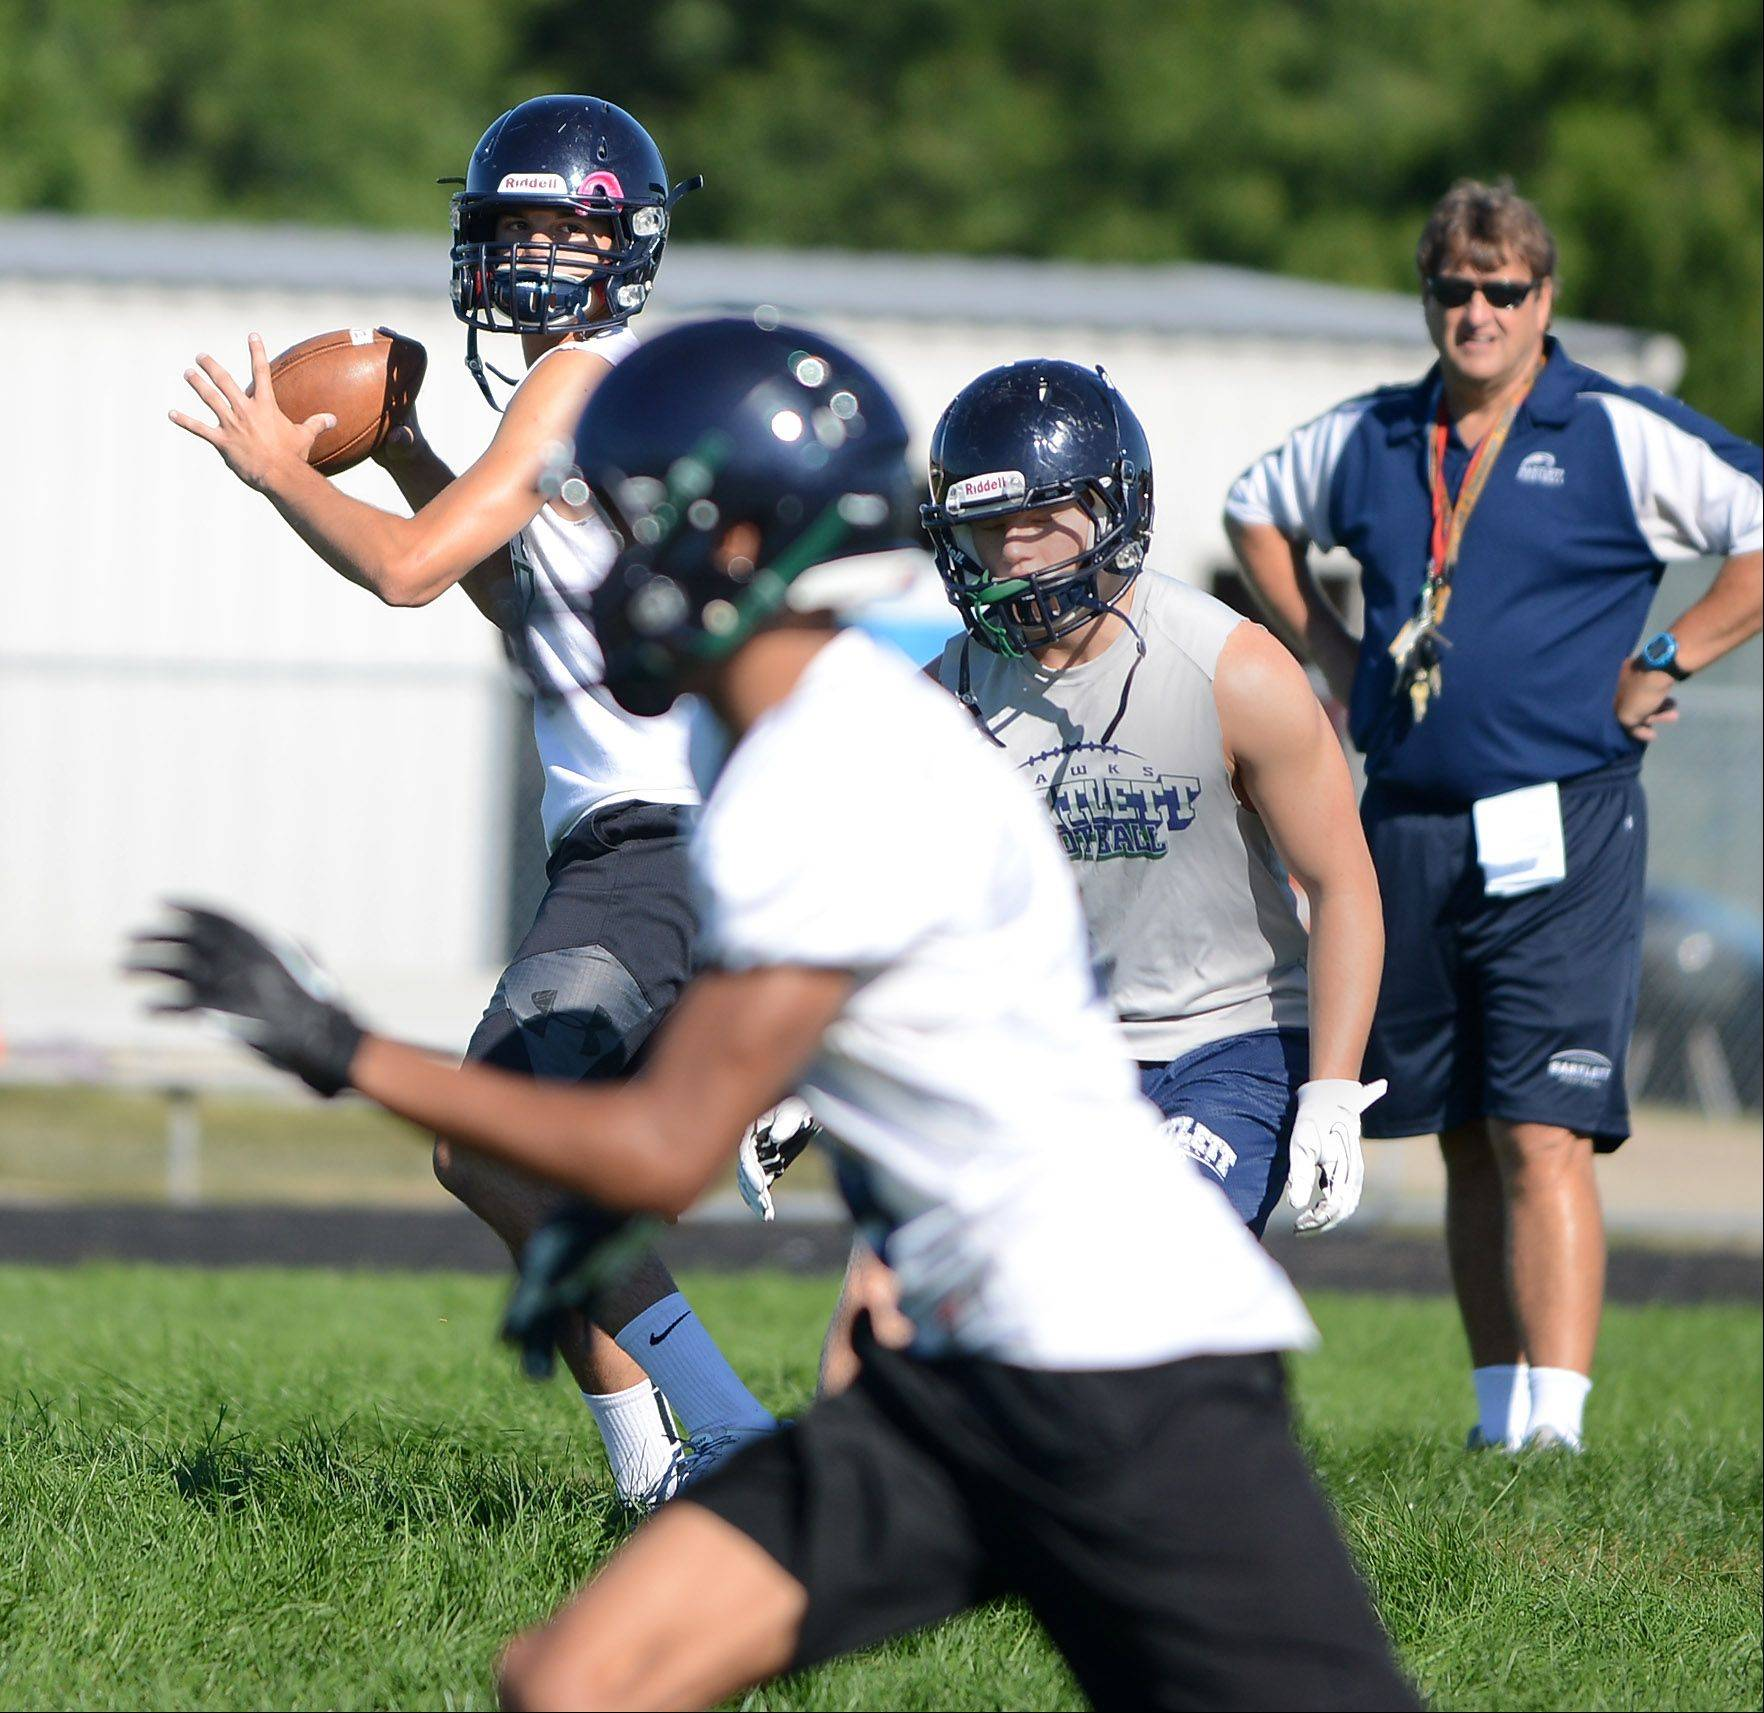 Quarterback Jordan Flint delivers a pass during the first day of fall football practice at Bartlett High School Wednesday.